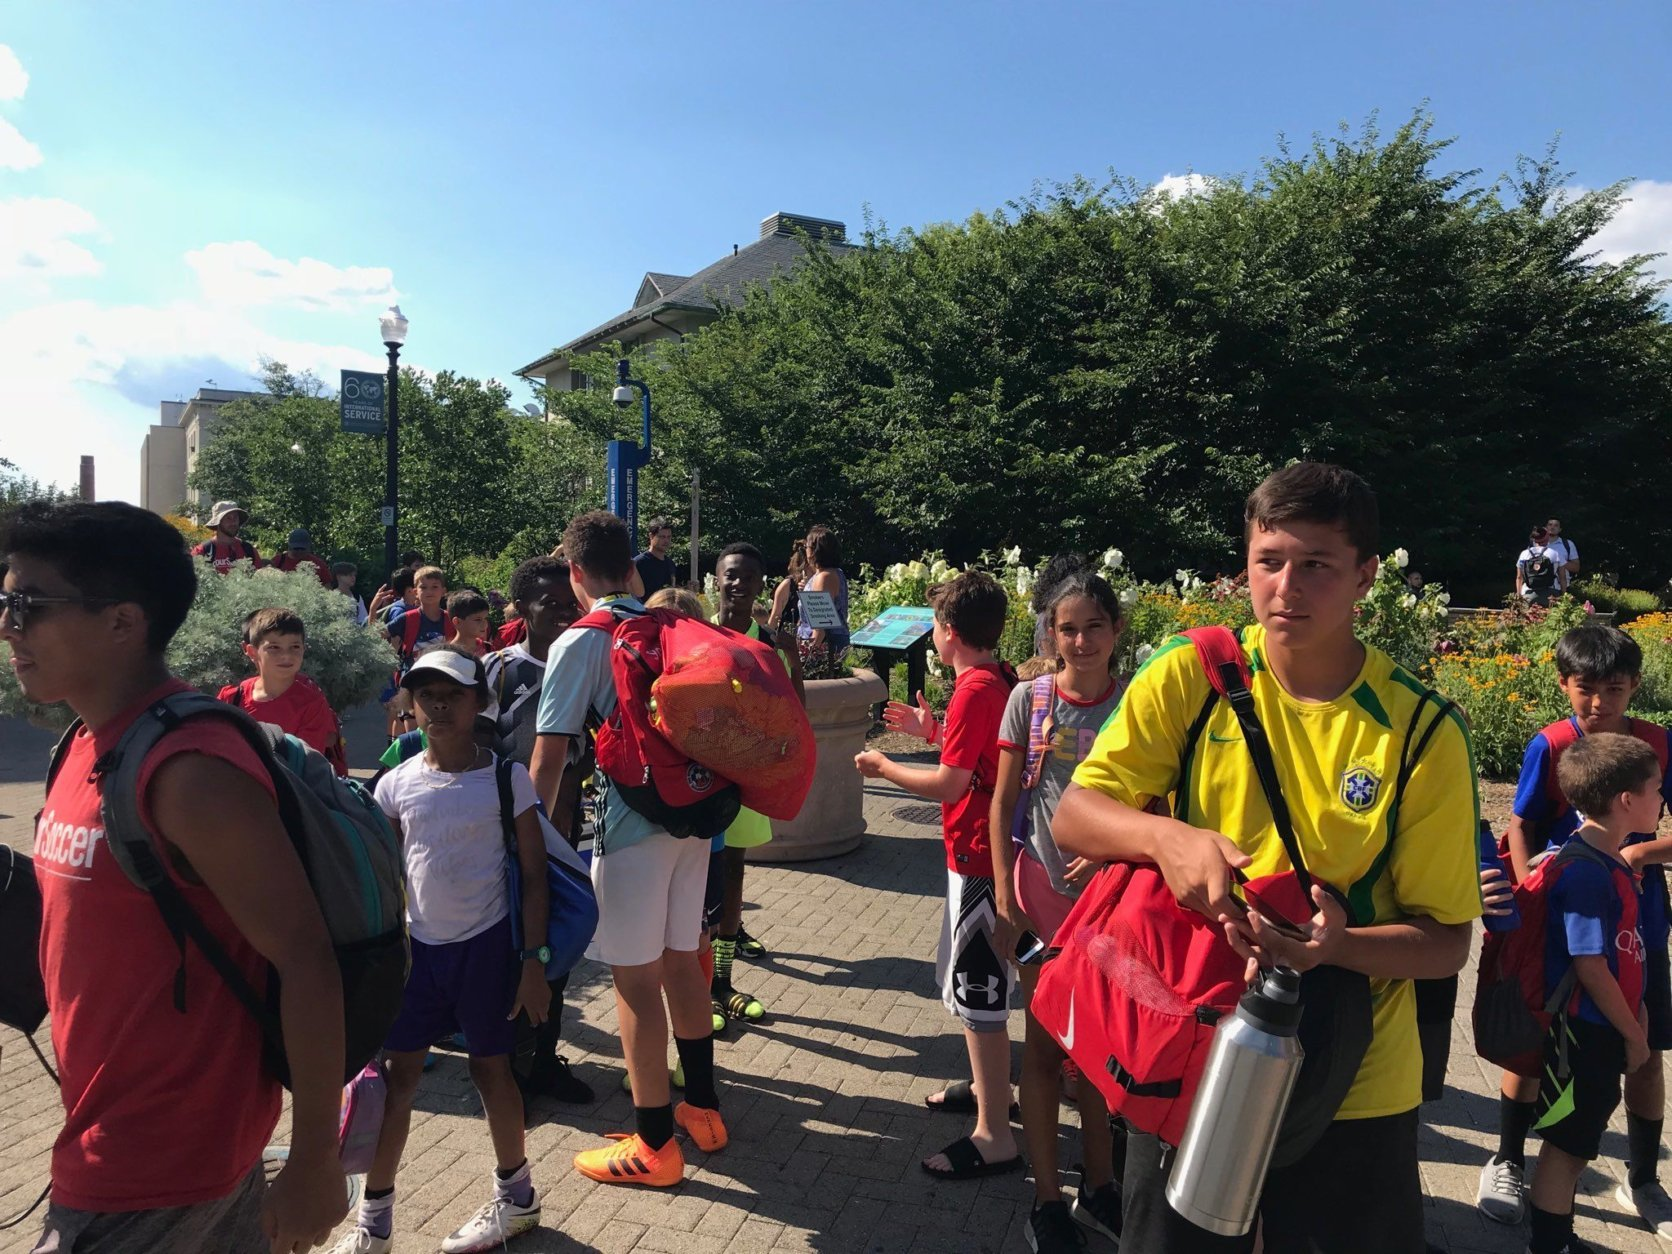 Attendees of a Wizards basketball camp head to meet their parents after the end of the lockdown. (WTOP/Dick Uliano)